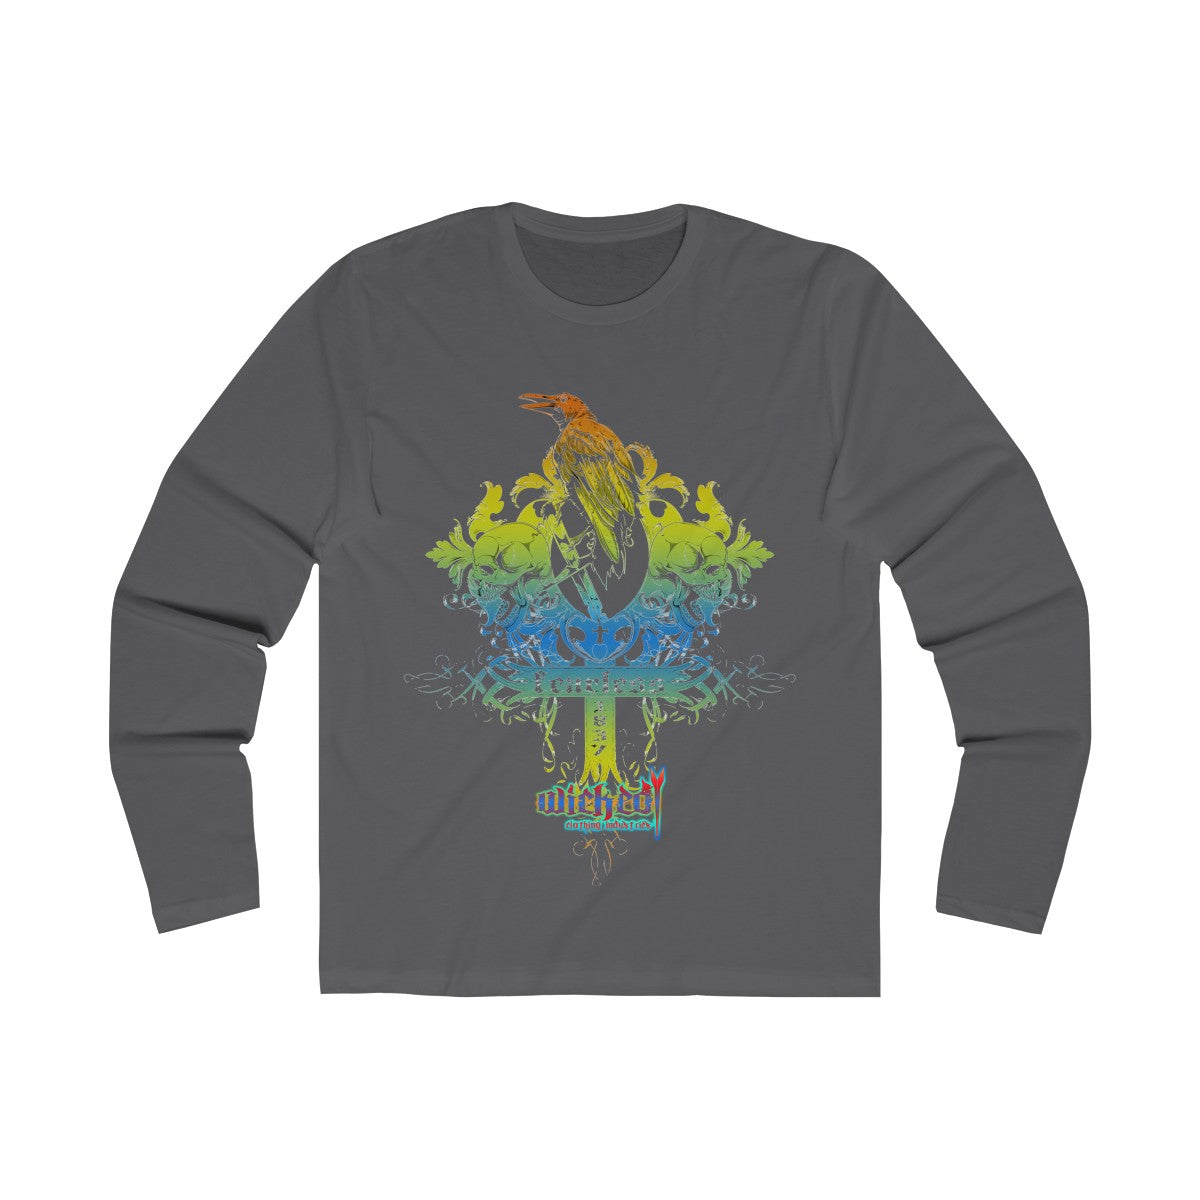 Fearless 2/ Men's Long Sleeve Crew Tee